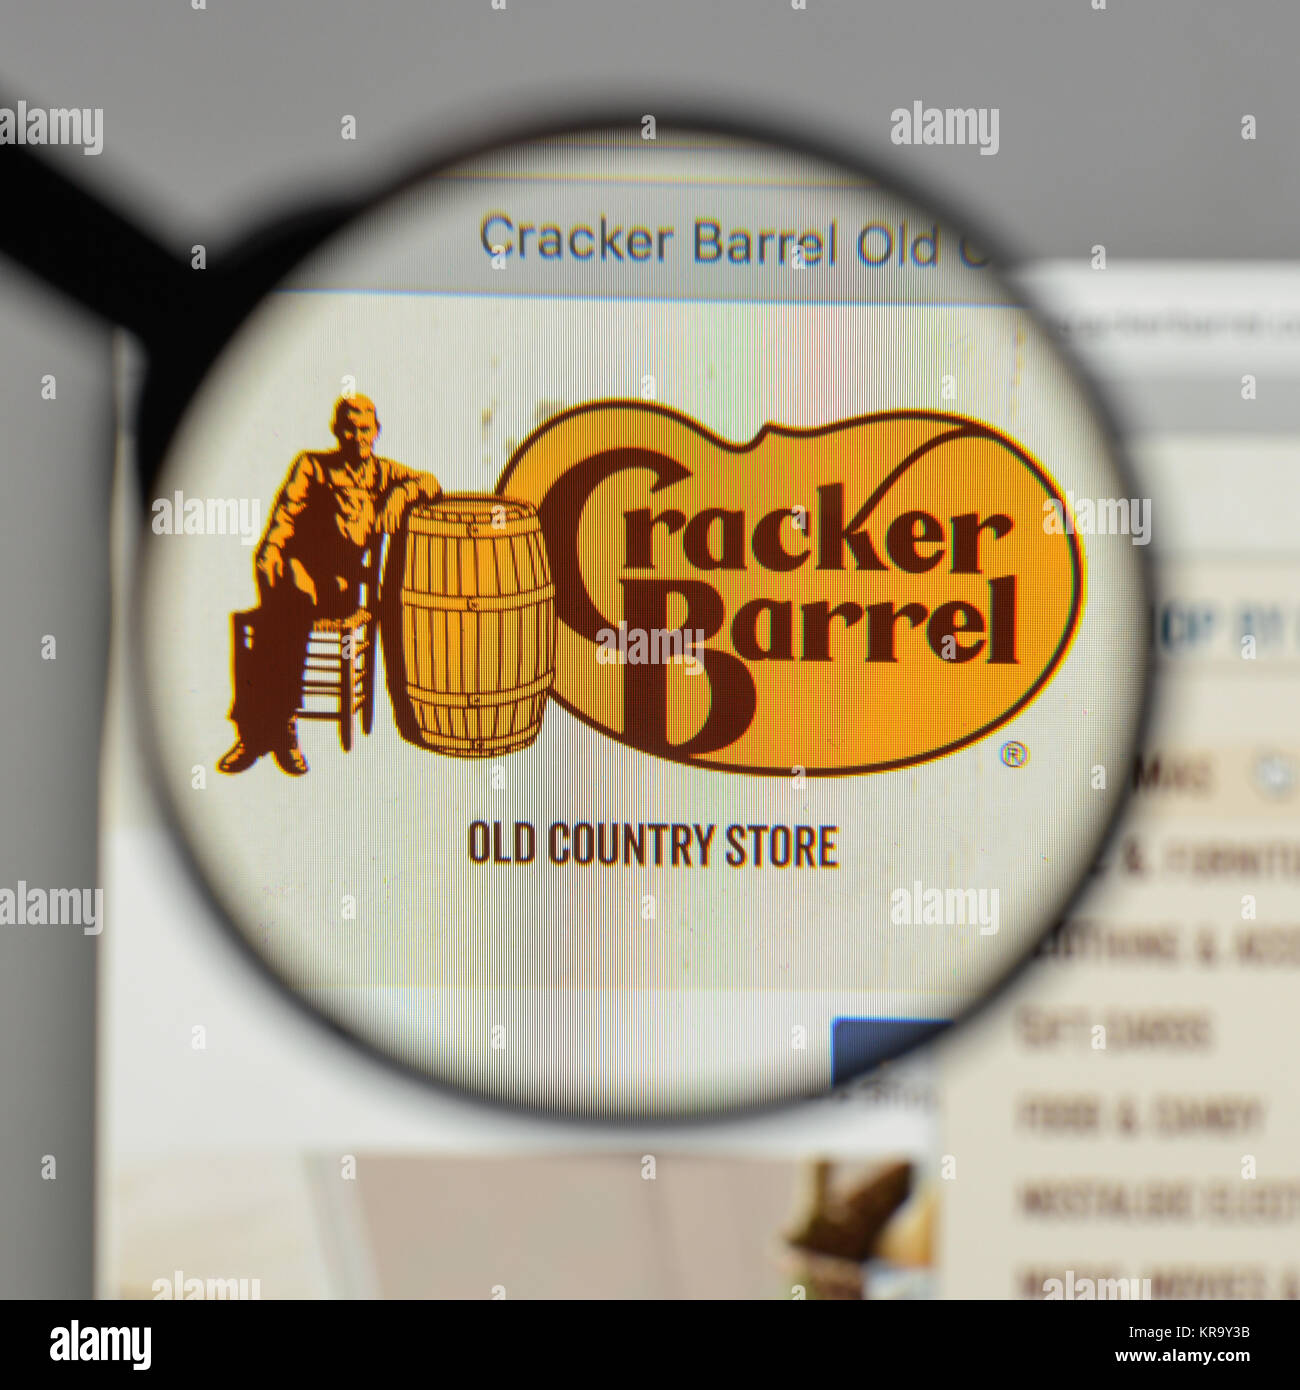 is there a cracker barrel in parkersburg wv